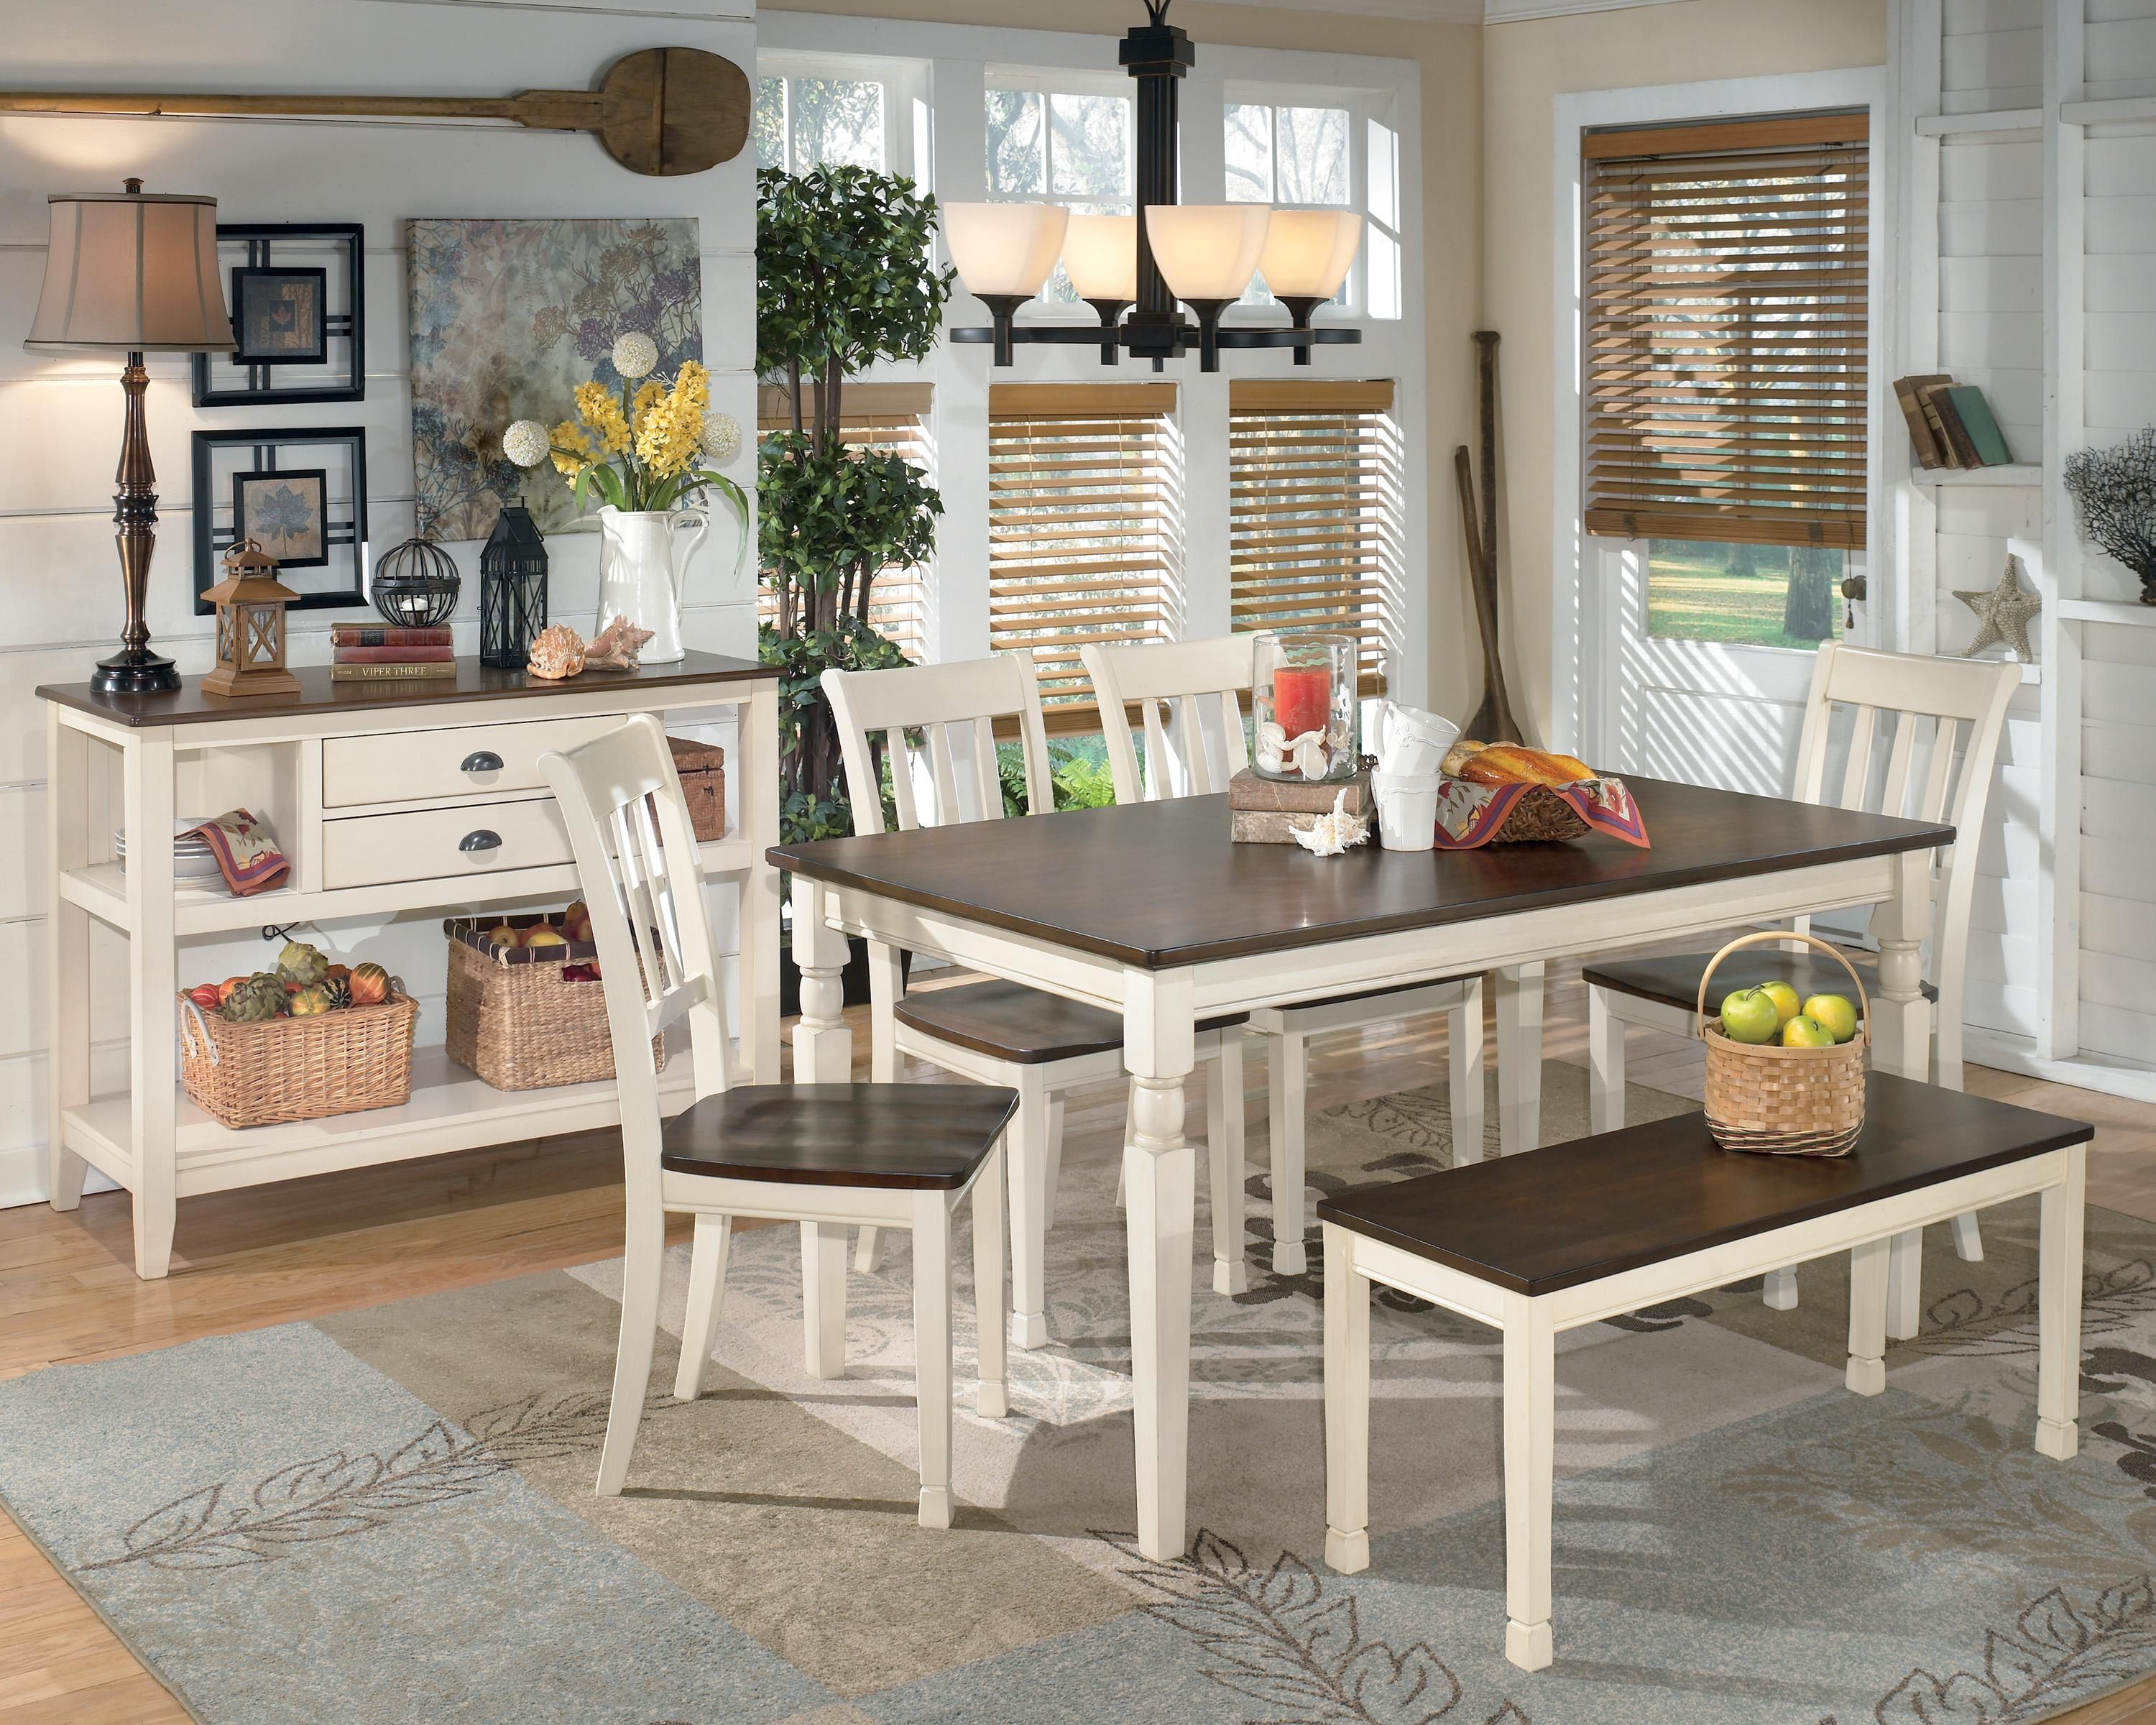 Whitesburg 6 Piece Rectangular Table Set With Bench By Signature Design By Ashley At Wayside Furniture Dining Room Server Rectangular Dining Table Dining Table In Kitchen